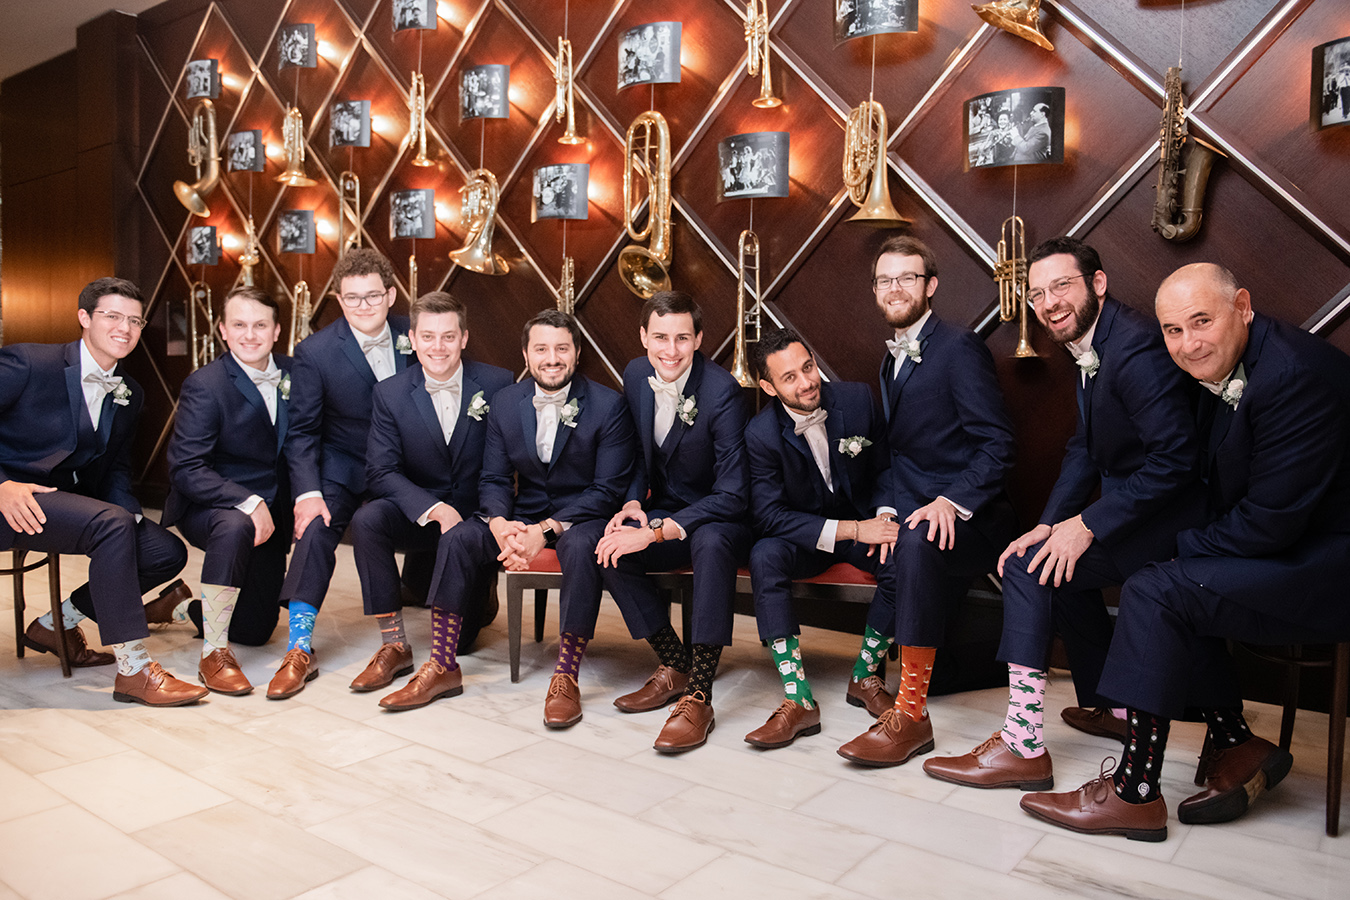 Kevin gifted Bonfolk socks to his groomsmen, each receiving a unique design, but all with NOLA flair!